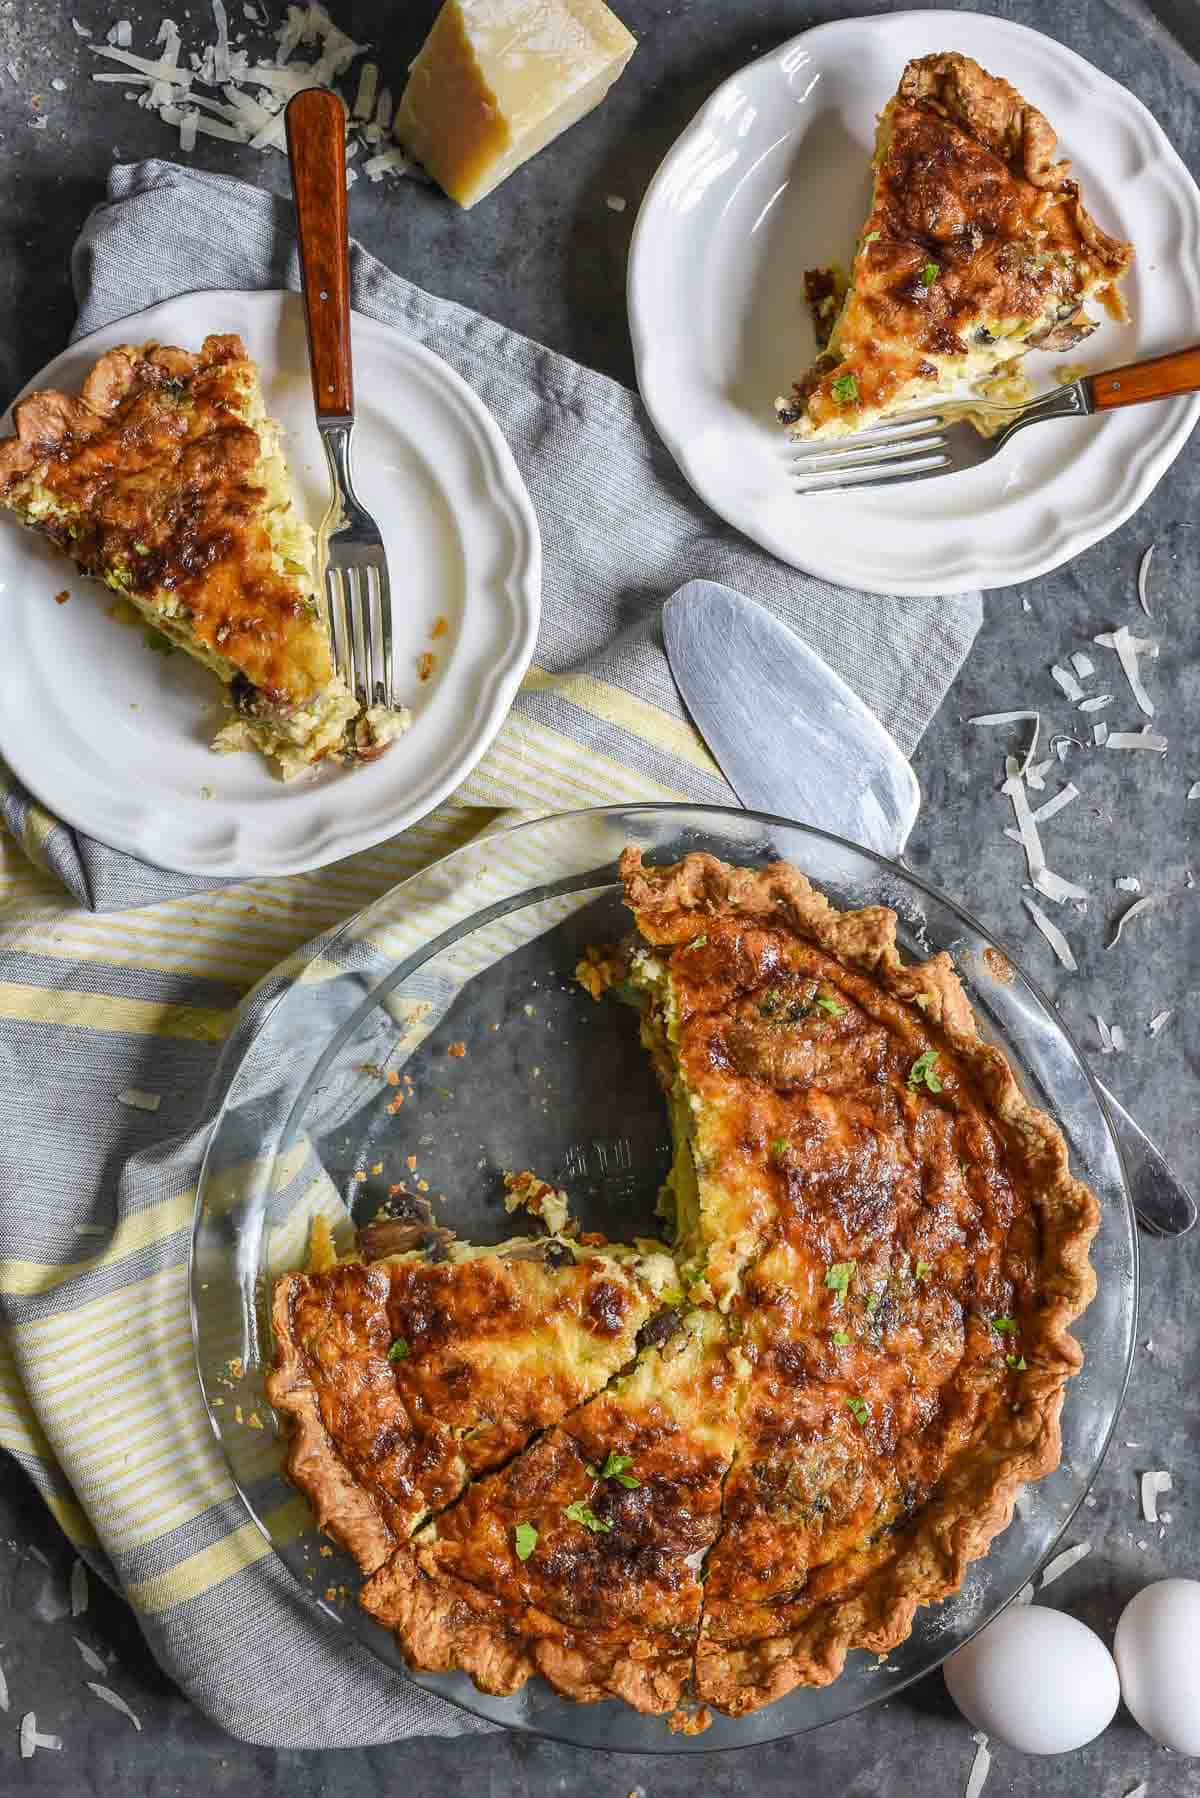 This Mushroom and Leek Quiche is loaded with cheesy gruyere for an indulgent spring brunch recipe!